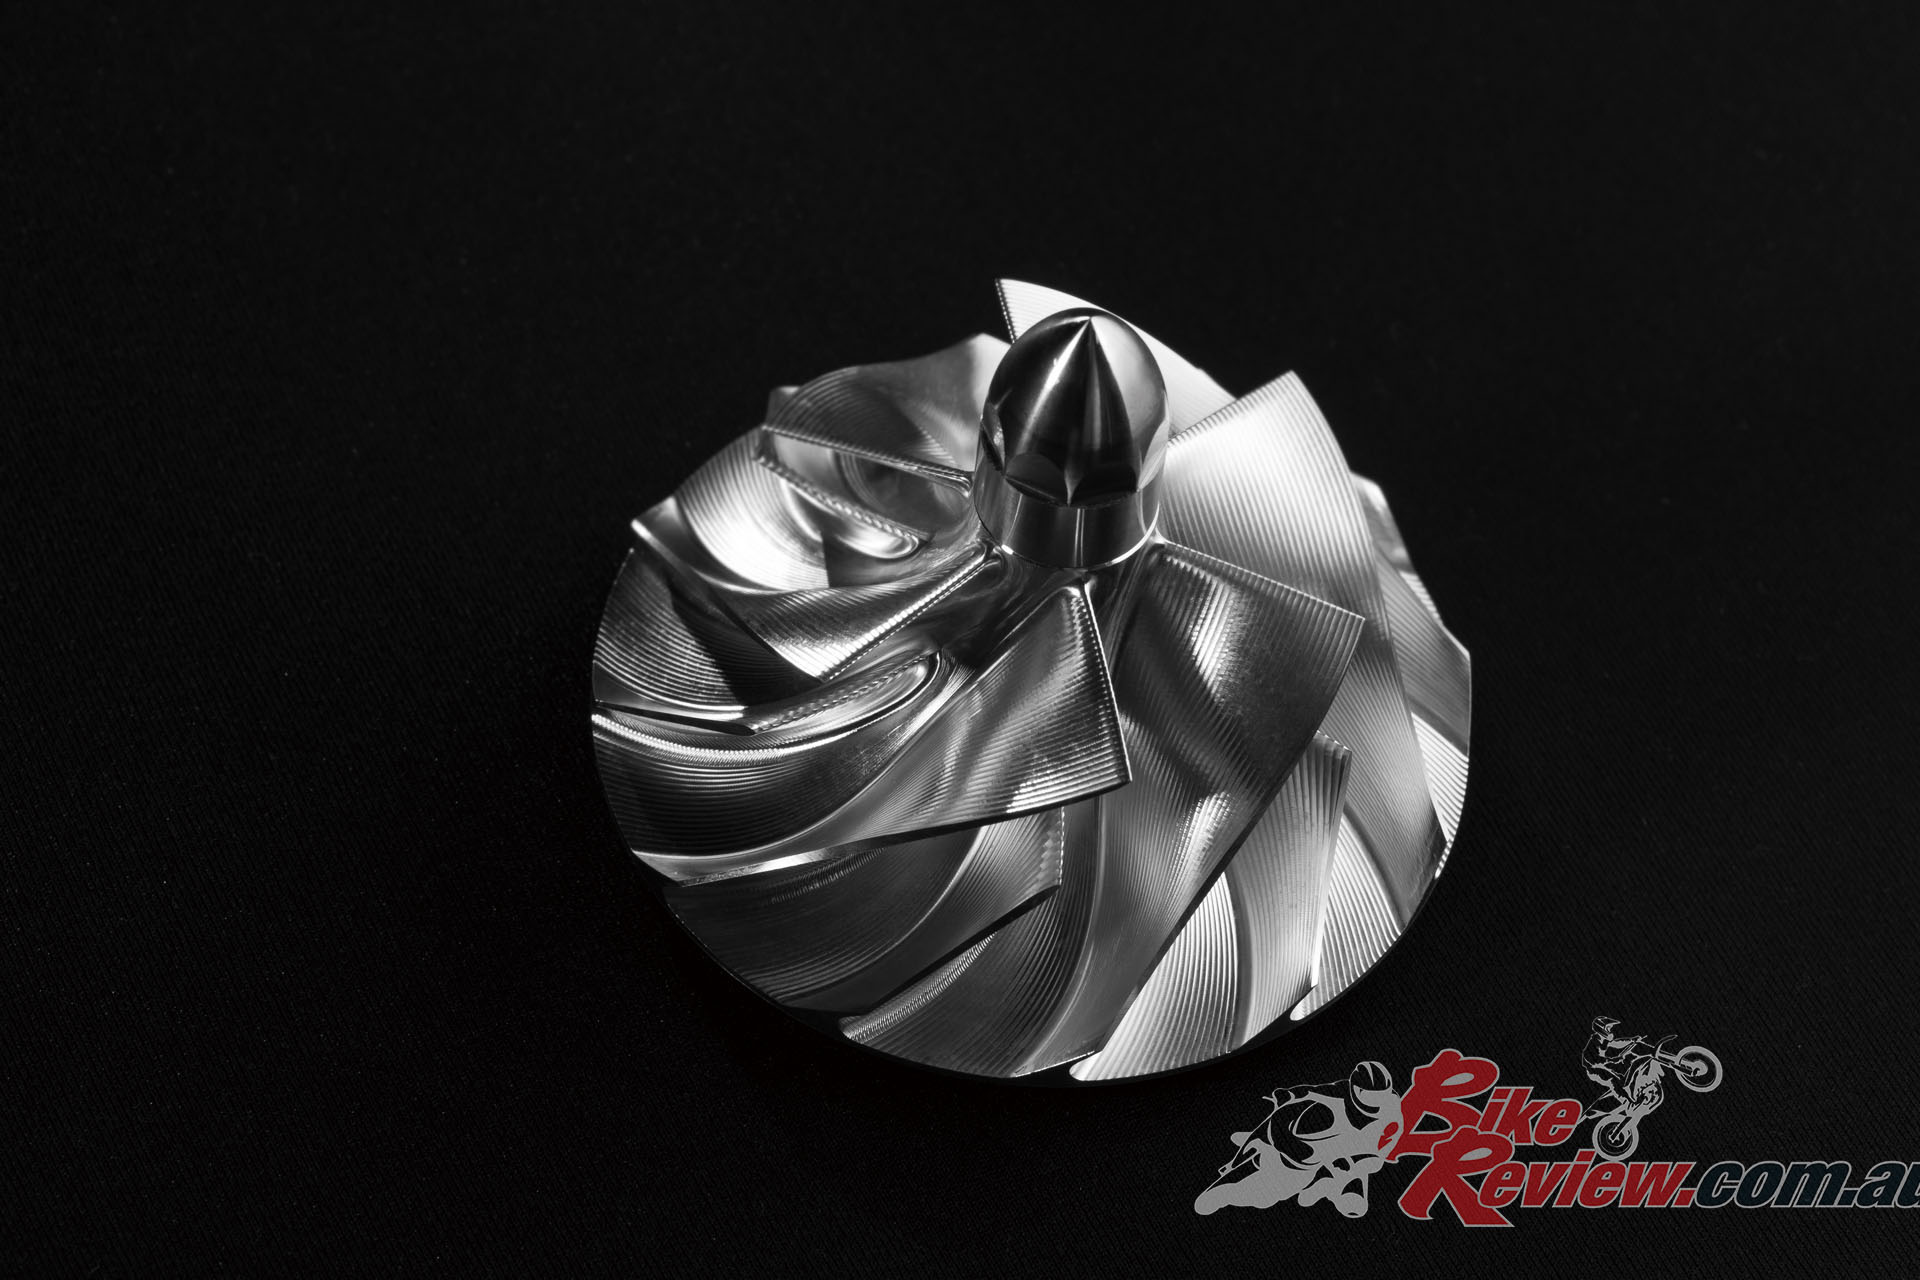 The supercharger impeller is formed of a forged aluminium and measures 69mm across.